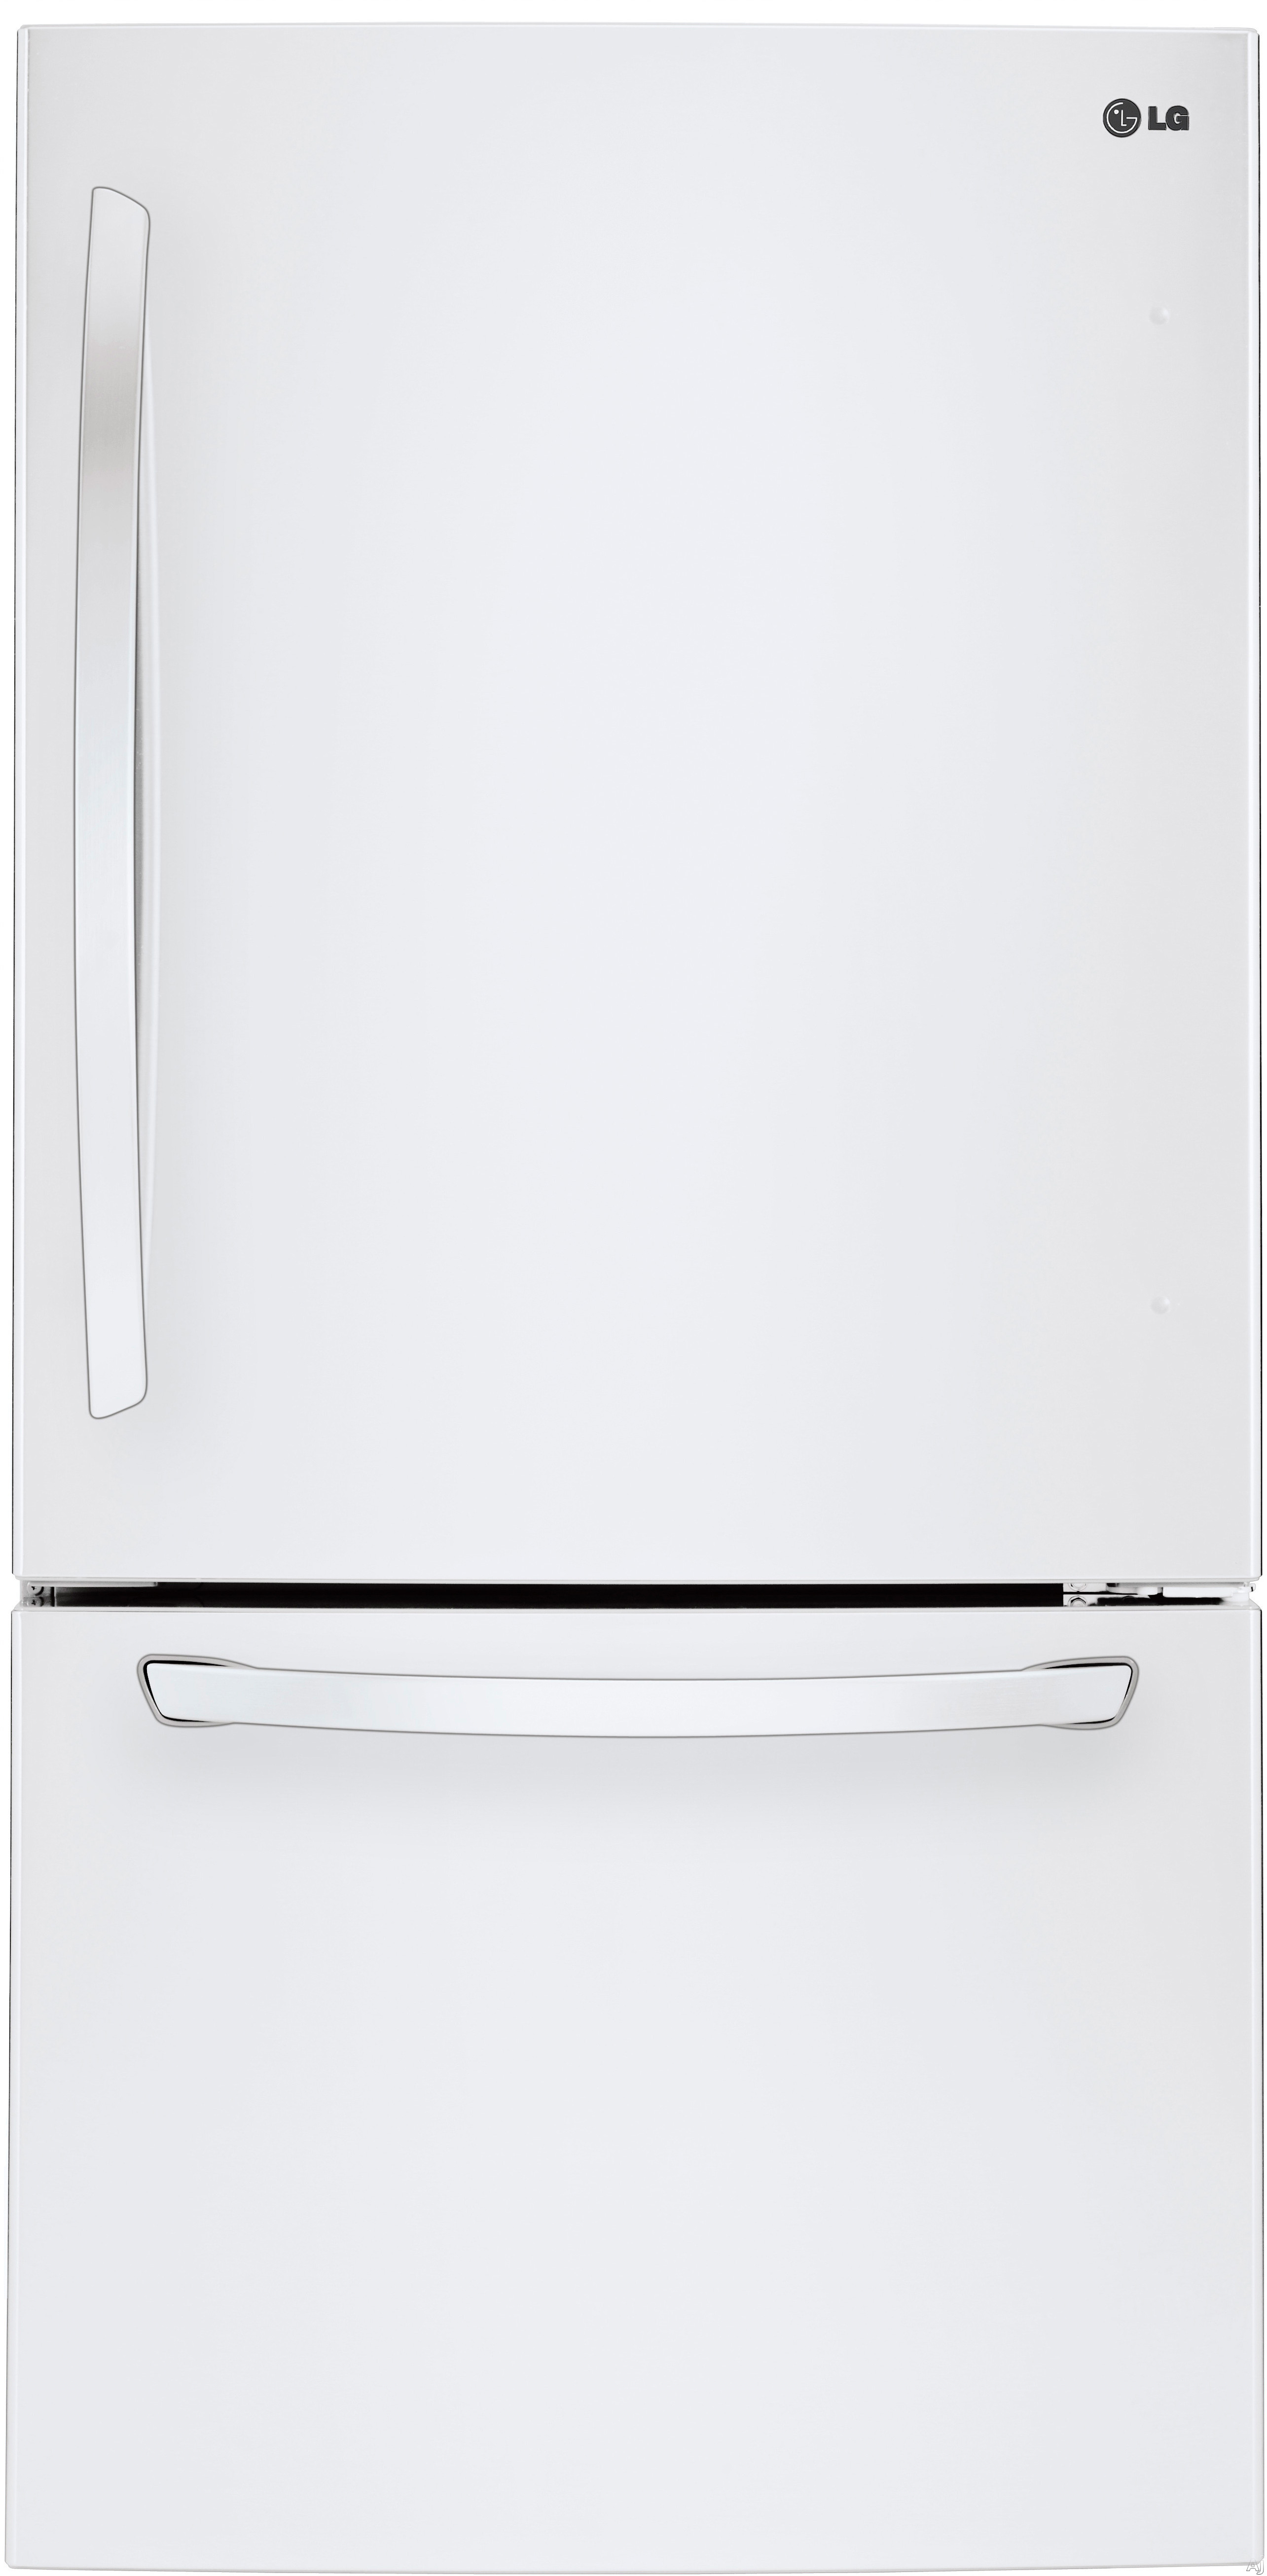 LG LDCS22220W 30 Inch Bottom Freezer Refrigerator with Linear Compressor, SmartDiagnosis™, Ice Maker, Door Alarm, Adjustable SpillProtector™ Shelves, Humidity-Controlled Crisper Drawers, 2-Tier Organization Freezer, ENERGY STAR® and 22 cu. ft. Capacity: White